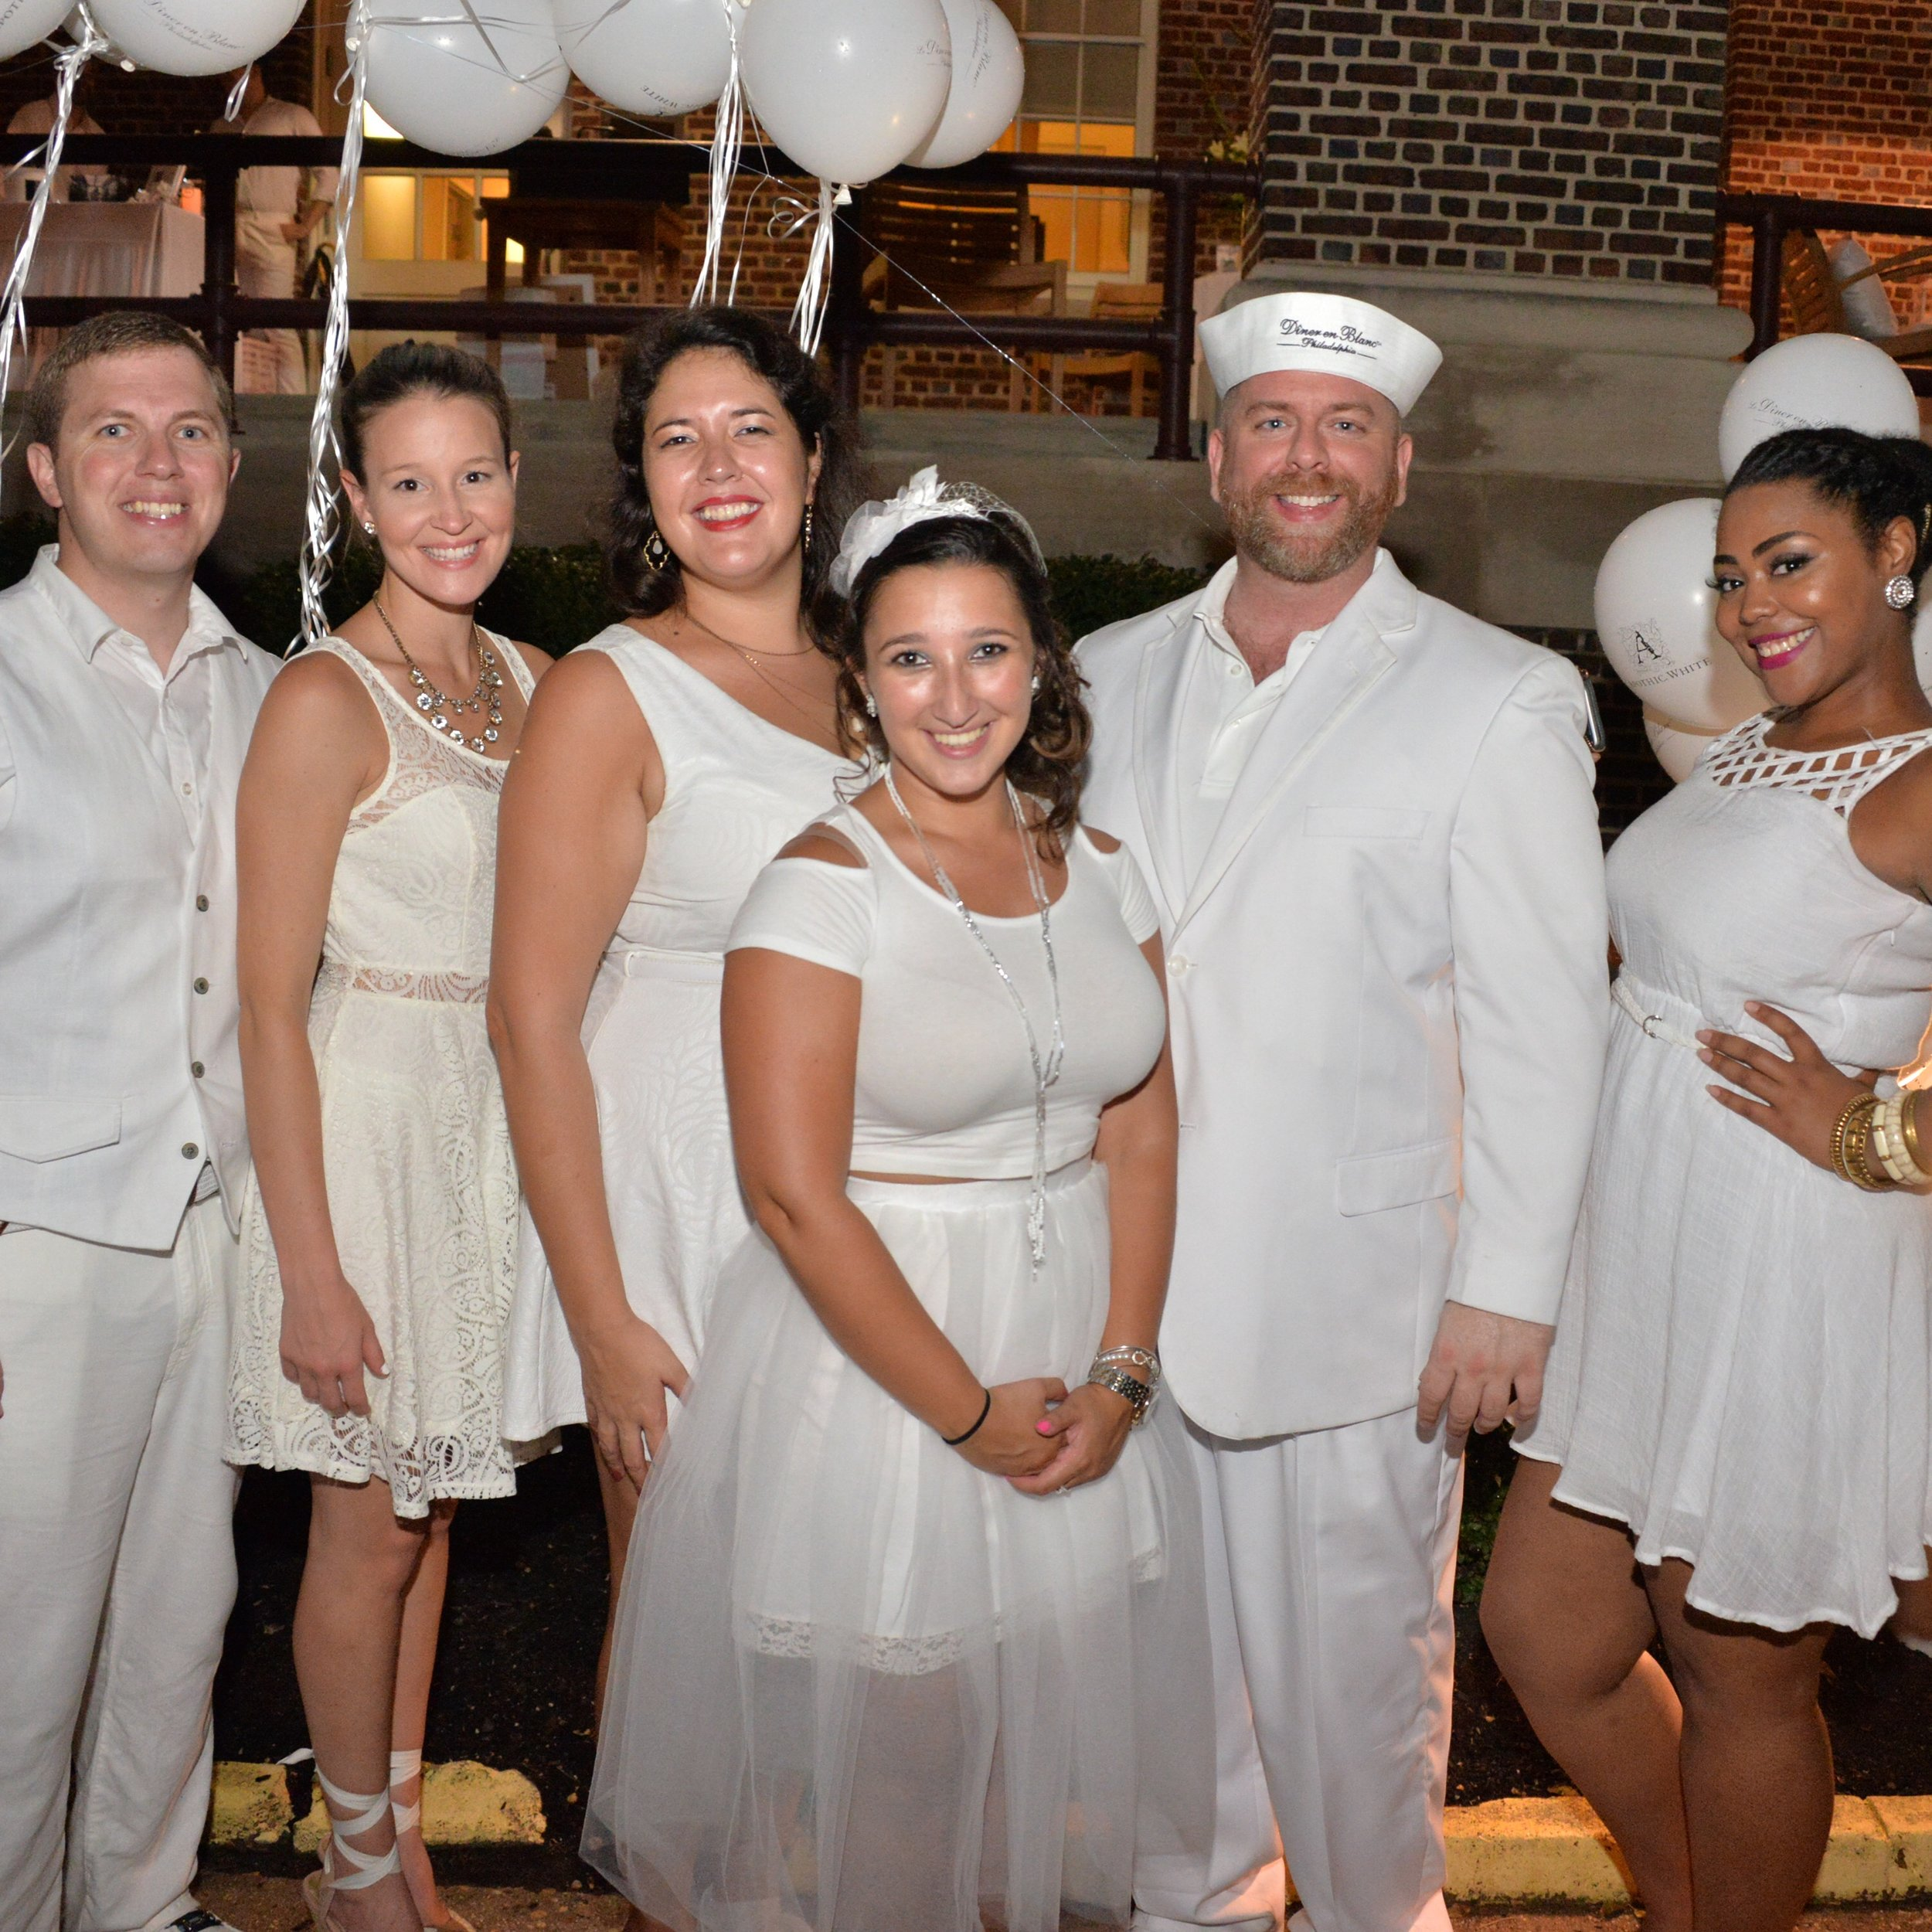 Aversa PR team at Diner en Blanc Philadelphia